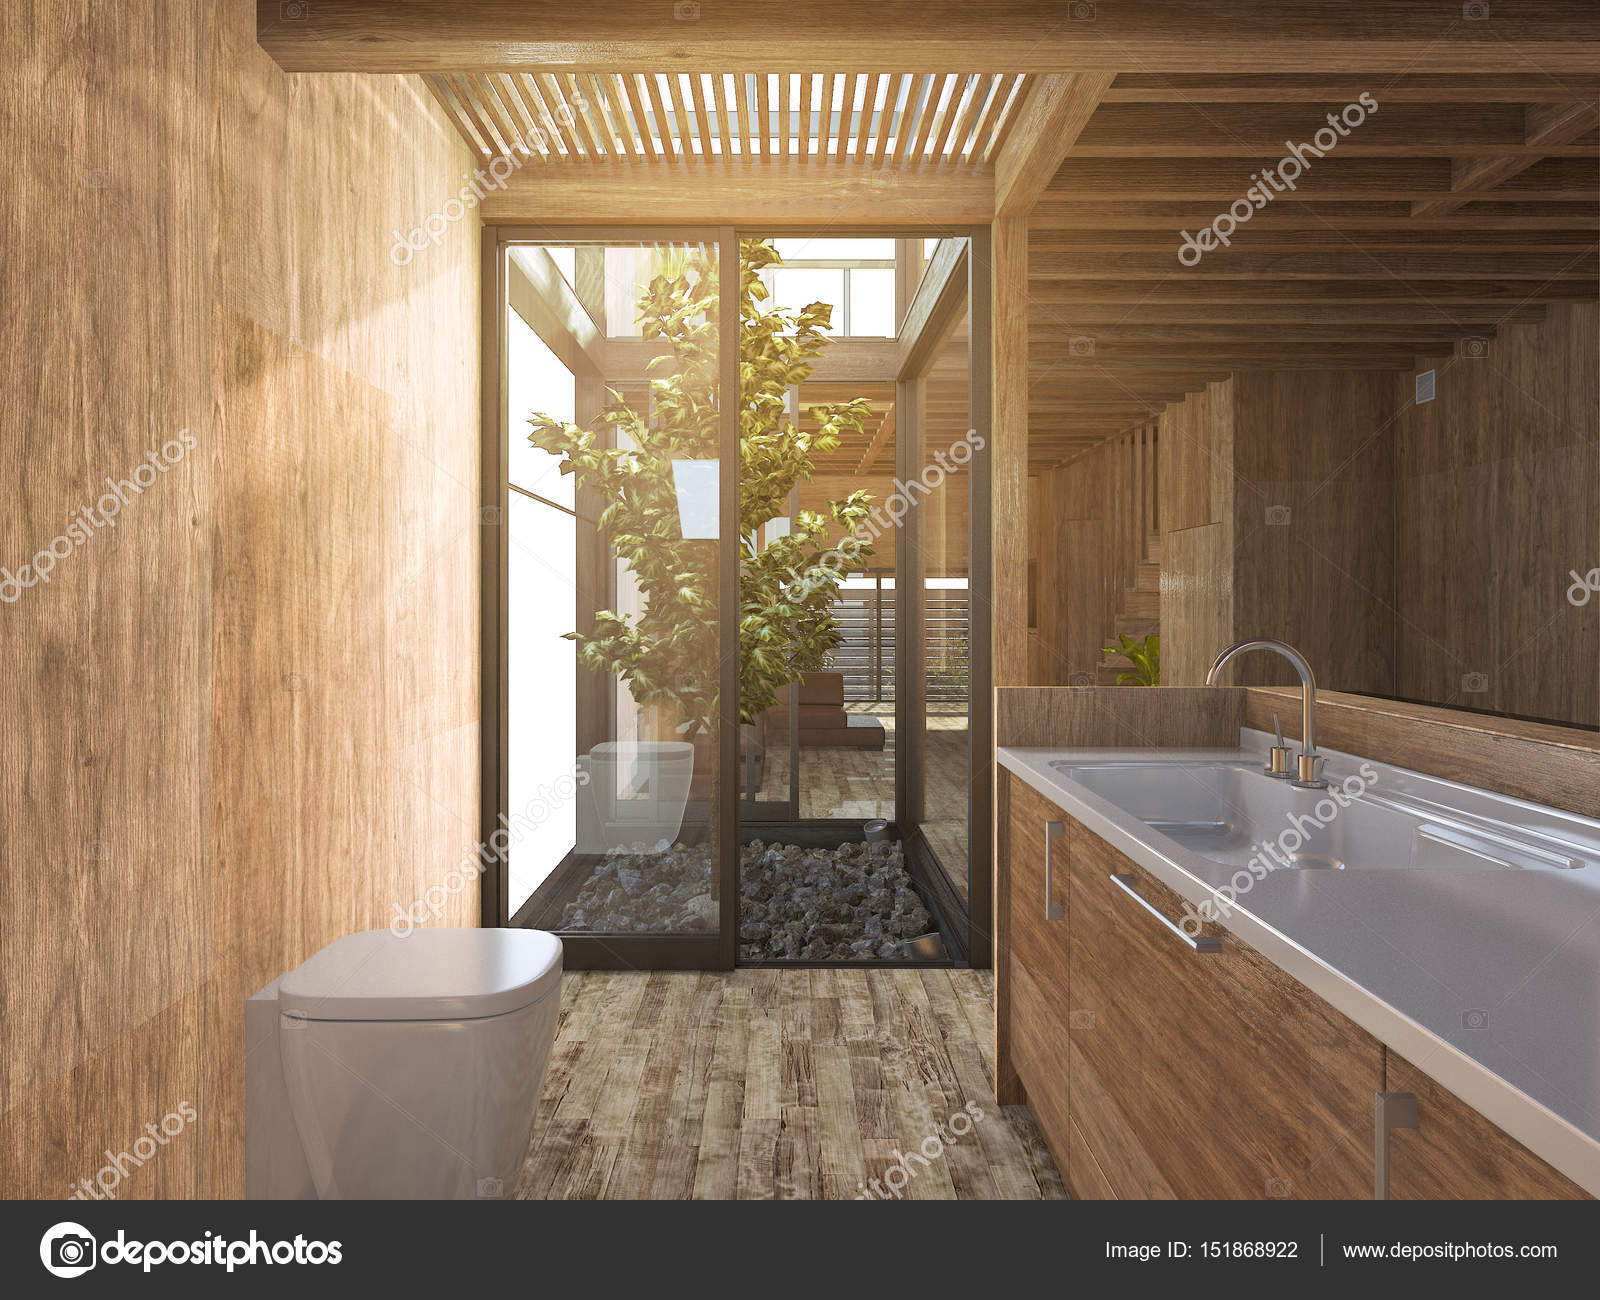 3d Rendering Interior And Exterior Design Photo By Dit26978